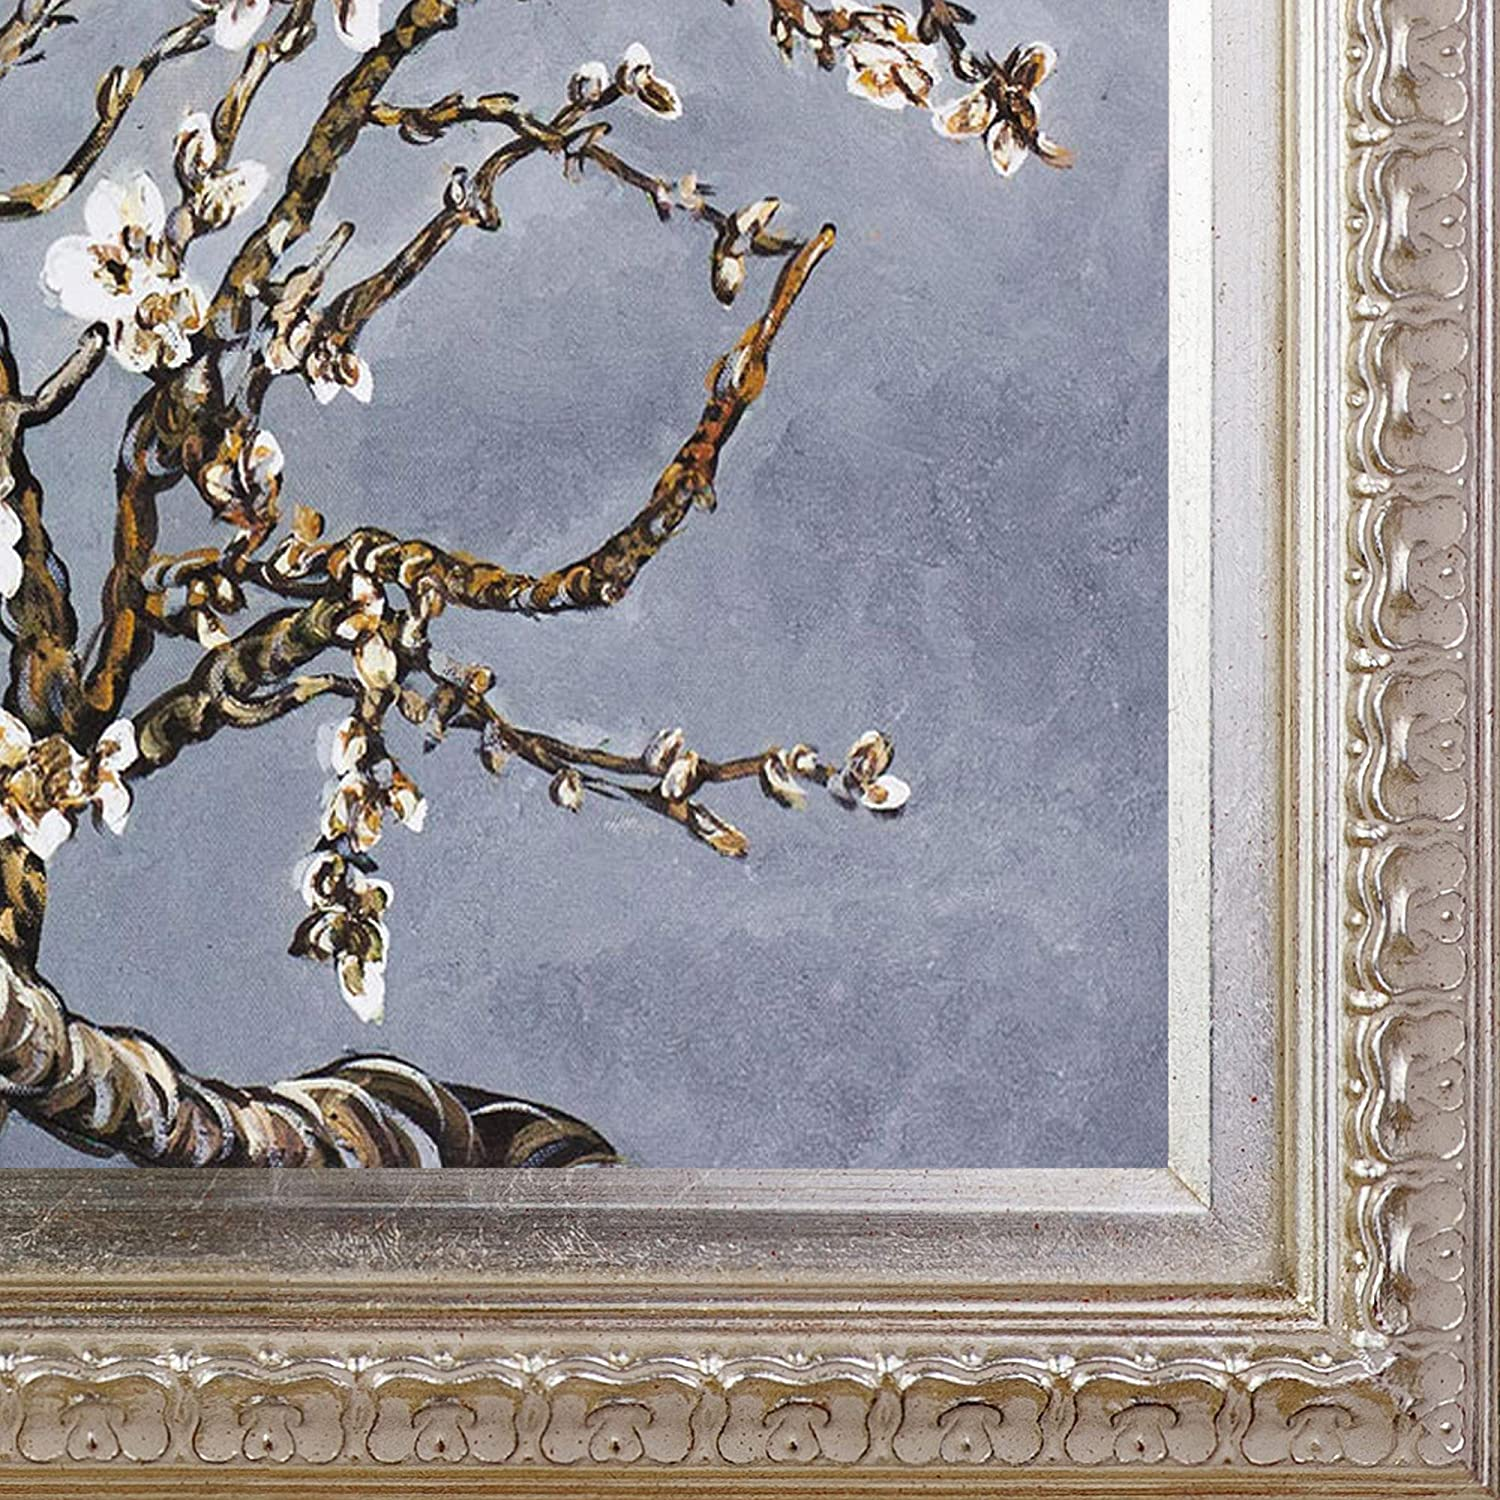 La Pastiche VG2720-FR-7870S20X24 Almond Tree In Blossom Pearl Grey Framed Hand Painted Original Artwork with Elegant Champagne Frame